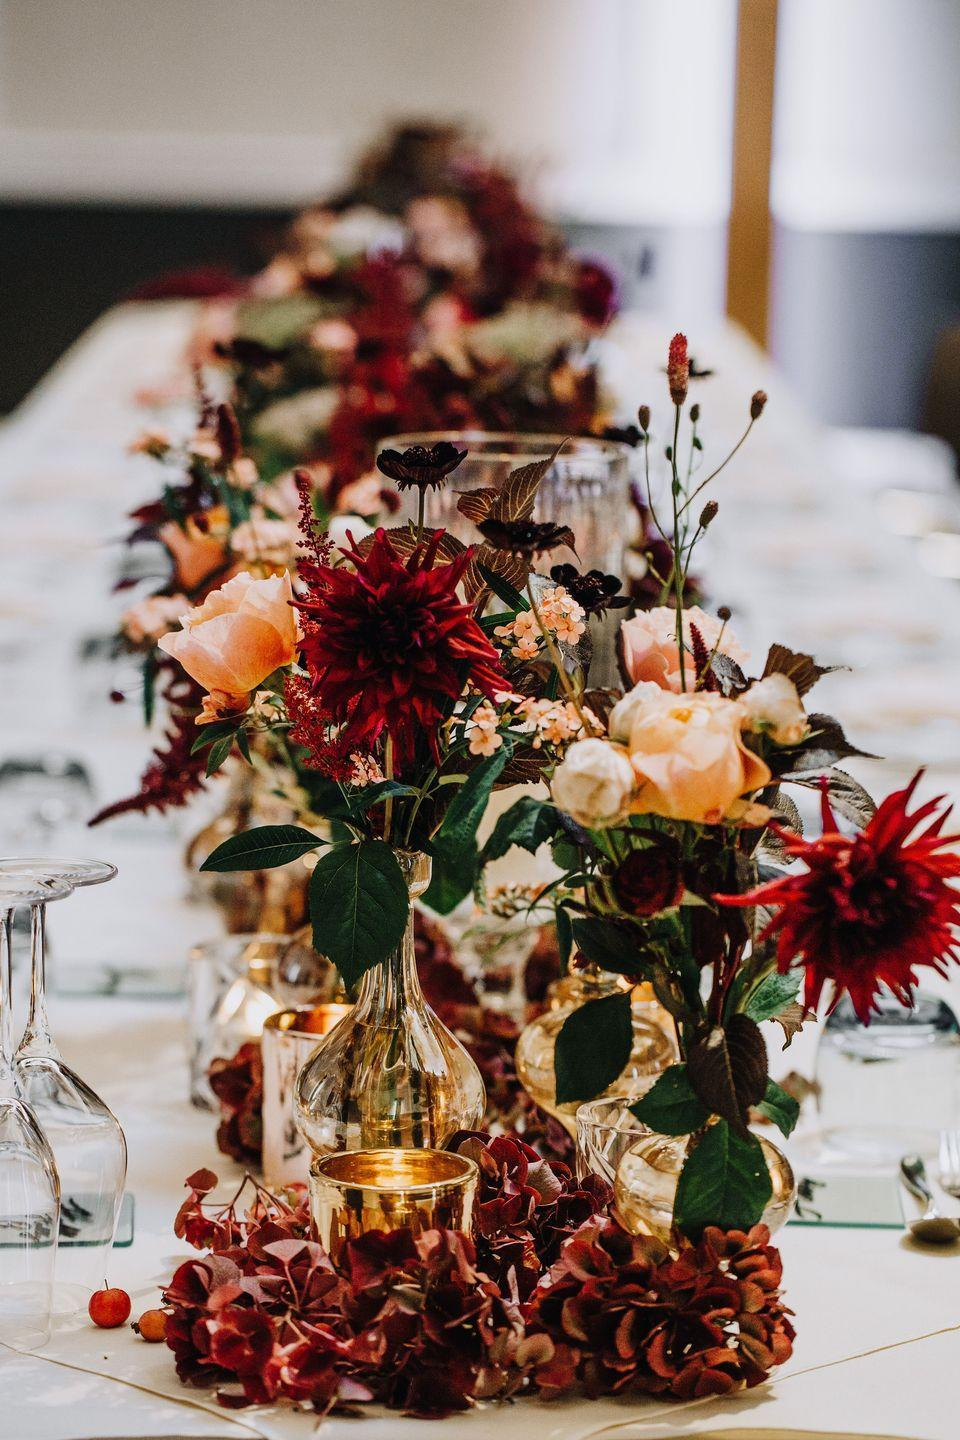 """<p>We must admit, we've spent many hours scrolling through this florist's Instagram and website - given it's wild, and affordable, wedding bouquets - during our lunchtime breaks. </p><p>Whether it's a hint of the countryside with amaranthus, dahlias and blush roses or hydrangeas and peonies to give a nuptials a slight Italian feel, these florists know exactly what they're doing when it comes to creating bespoke floral designs for a bride and groom. </p><p>30 Pimlico Rd, Belgravia, London SW1W 8LJ </p><p>Click <a href=""""http://www.wildatheart.com"""" rel=""""nofollow noopener"""" target=""""_blank"""" data-ylk=""""slk:here"""" class=""""link rapid-noclick-resp"""">here</a> to find out more.</p>"""